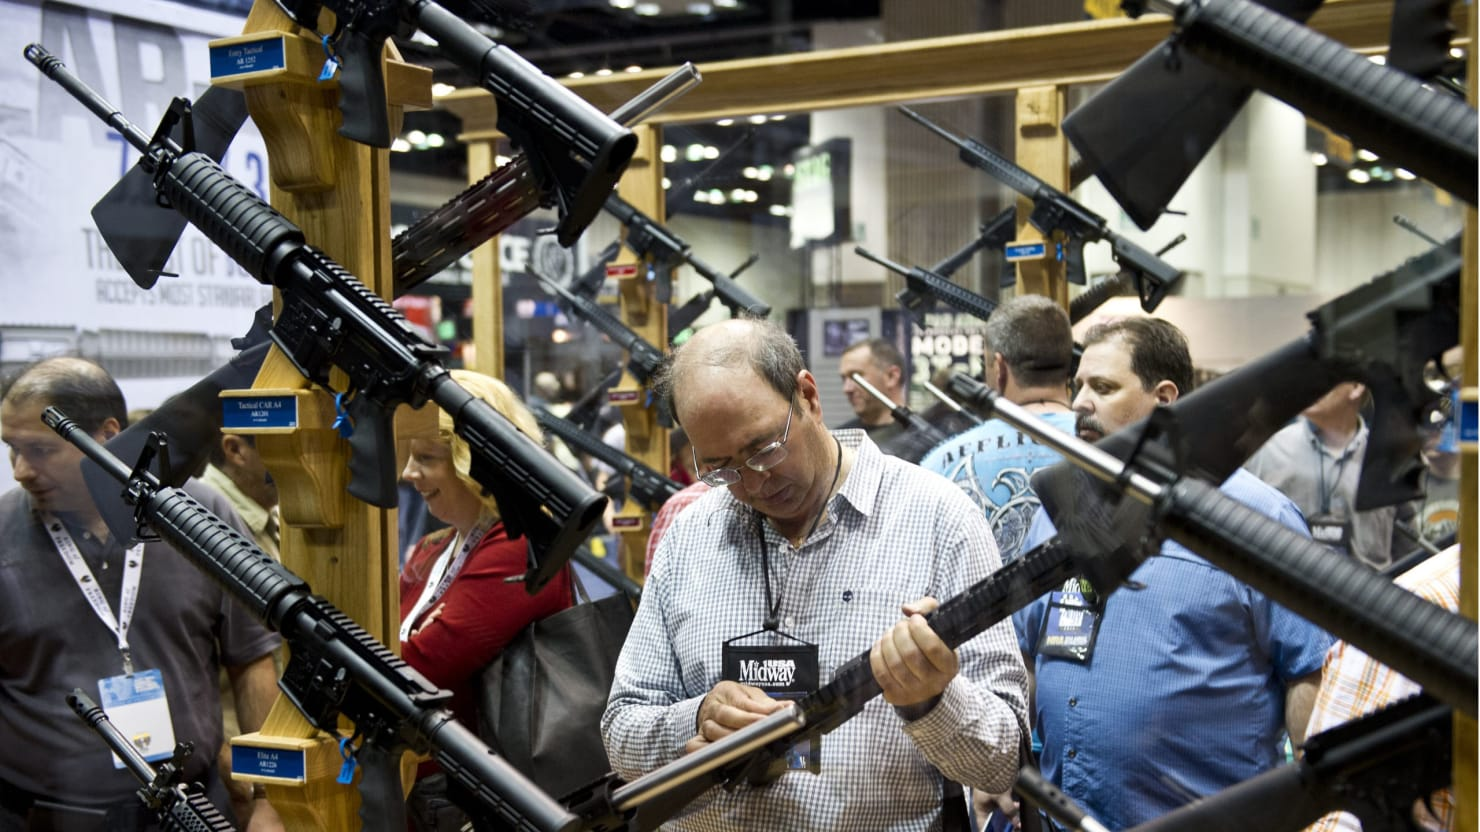 How the NRA Enables Massacres